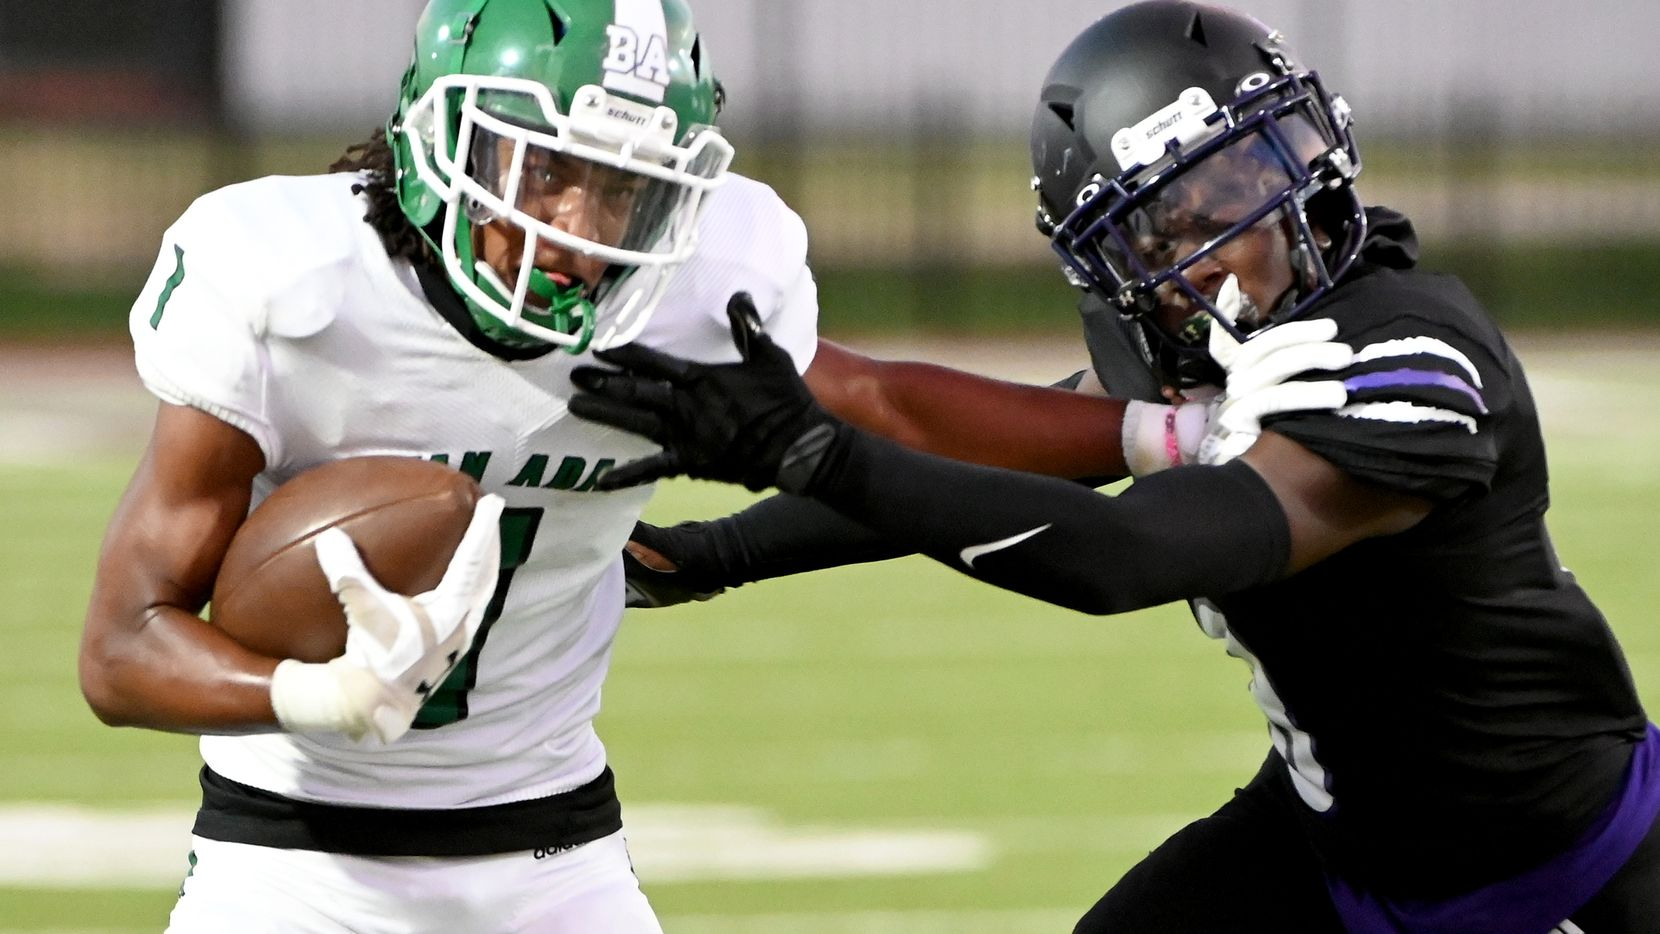 Bryan Adam's Rishon Taylor (1) stiff arms Lincoln's Donnell Williams (8) in the first half during a high school football game between Bryan Adams and Lincoln , Friday, Sept. 3, 2021, in Dallas.